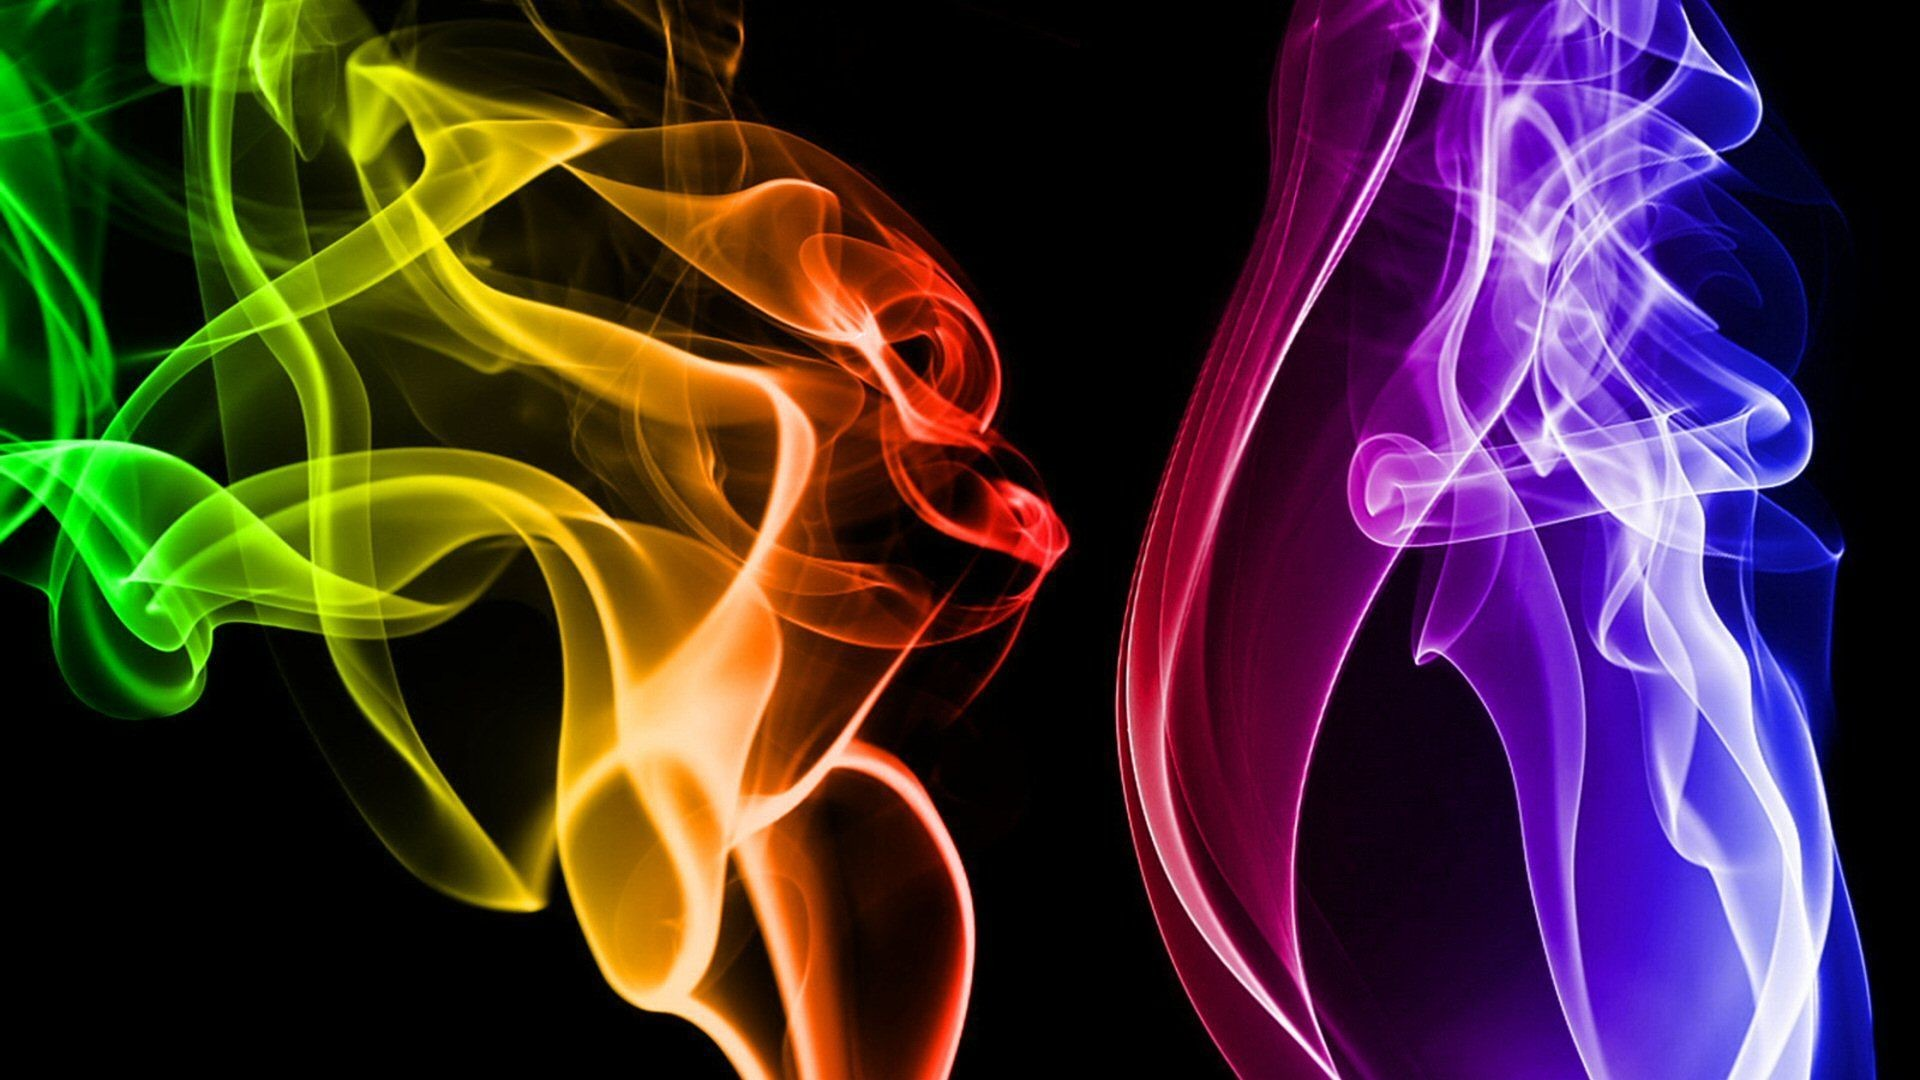 Cool Rainbow Backgrounds | Wallpaper Cave